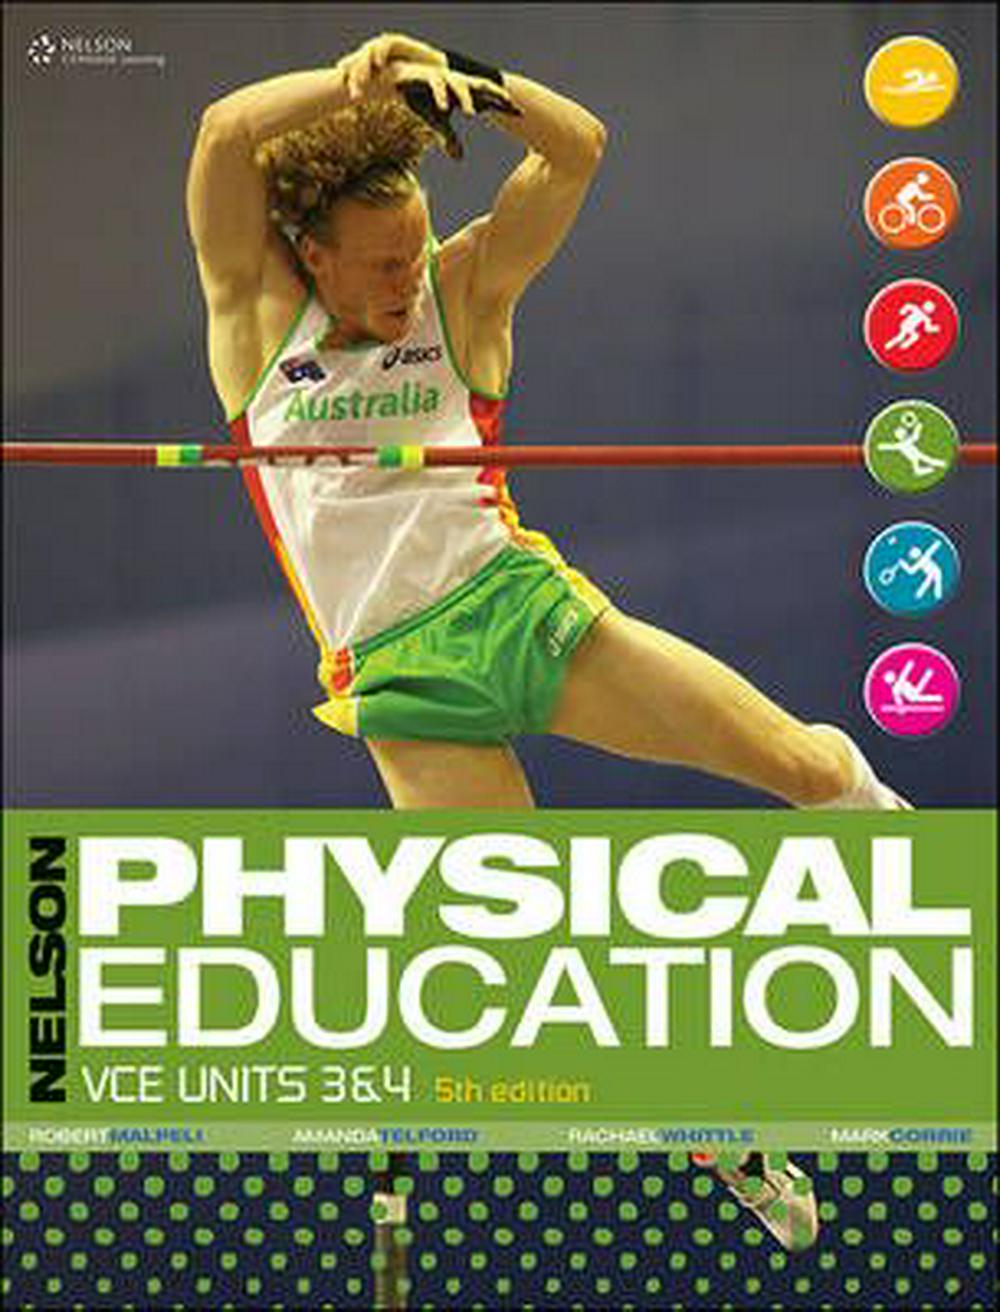 Nelson Physical Education VCE Units 3&4 Student Book Plus Access Card for 4 Years by Amanda Telford, ISBN: 9780170226257